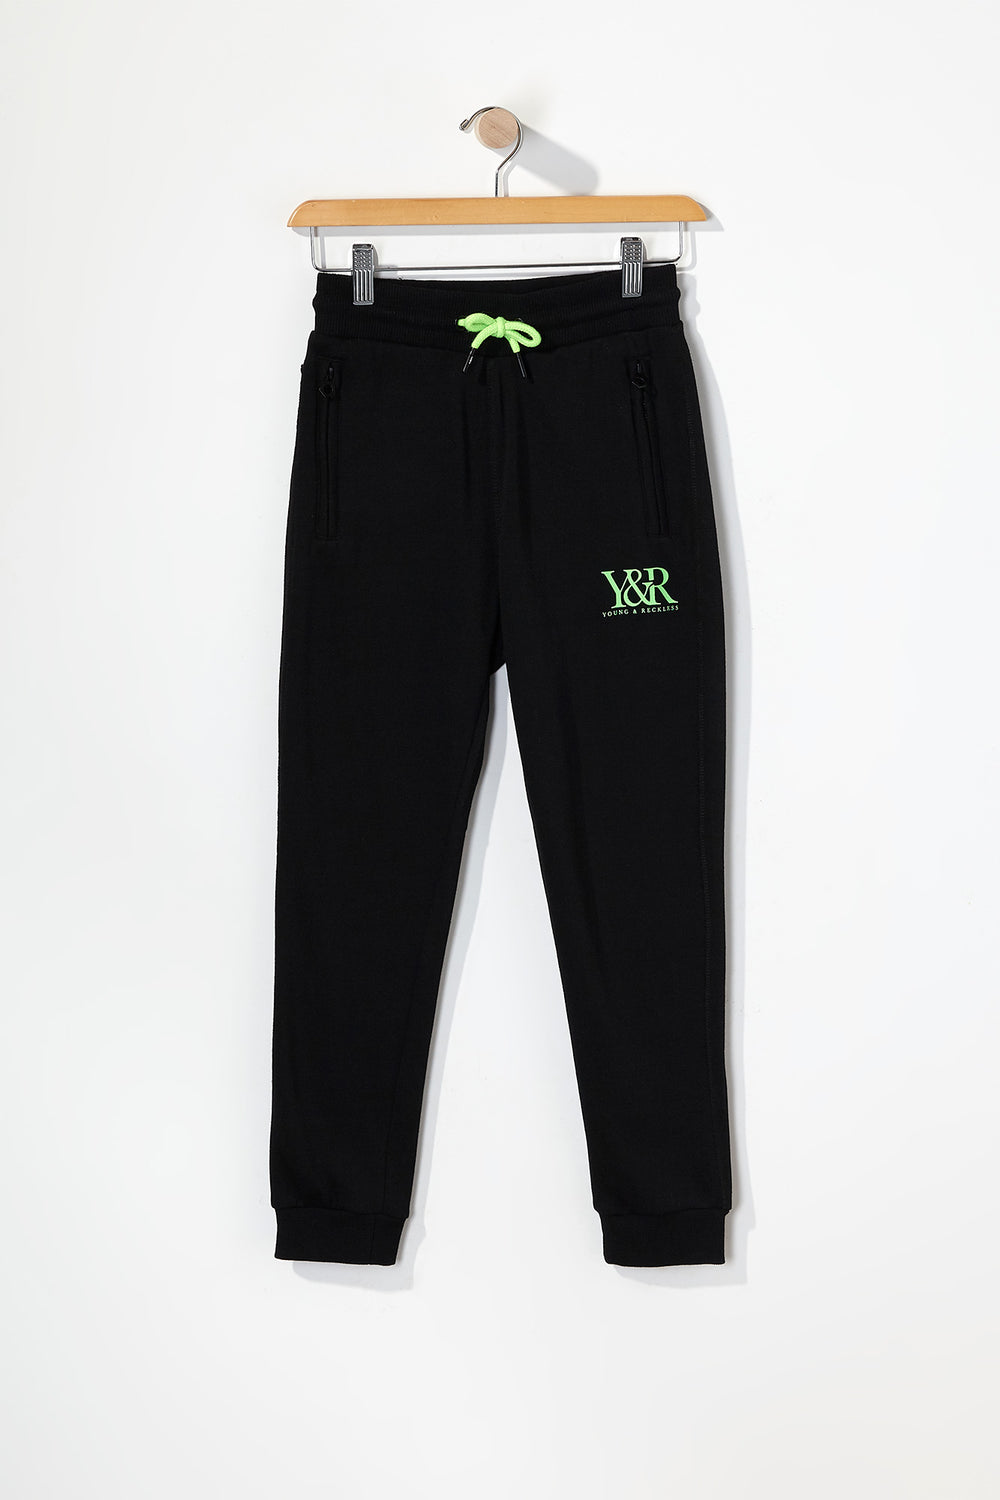 Young & Reckless Boys Neon Accent Joggers Black